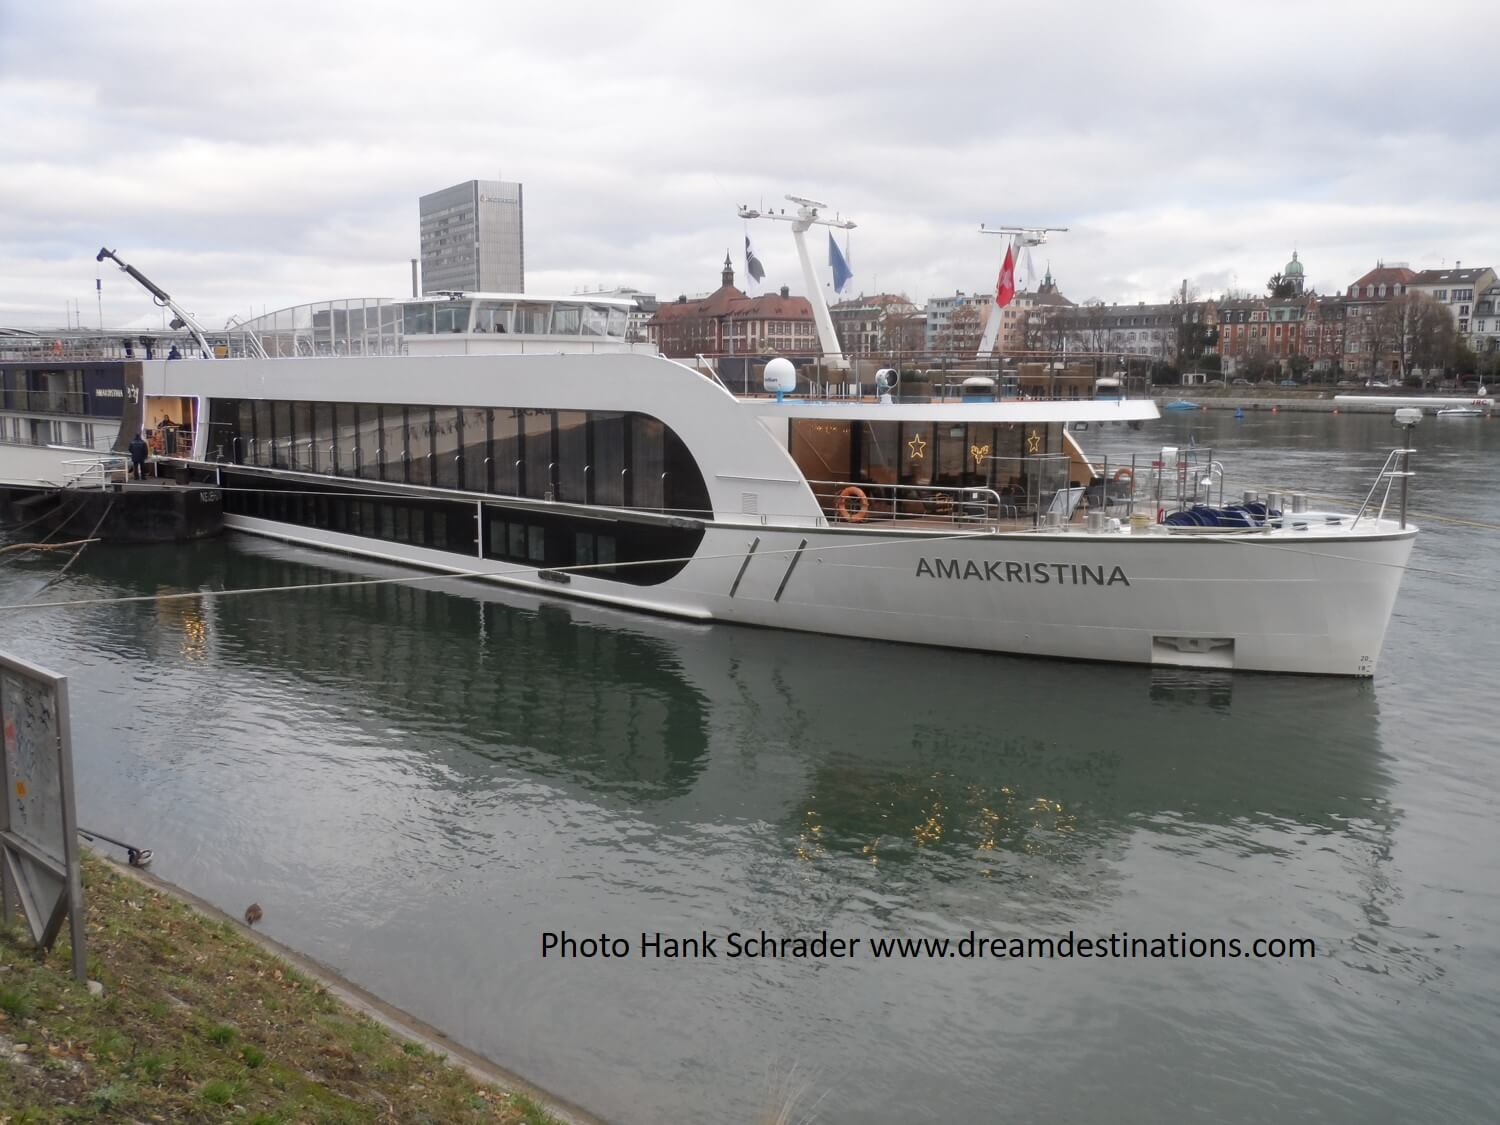 """The AmaKristina in port - """"Why is it so difficult to find the best European river cruise?"""" - Dream Destinations"""